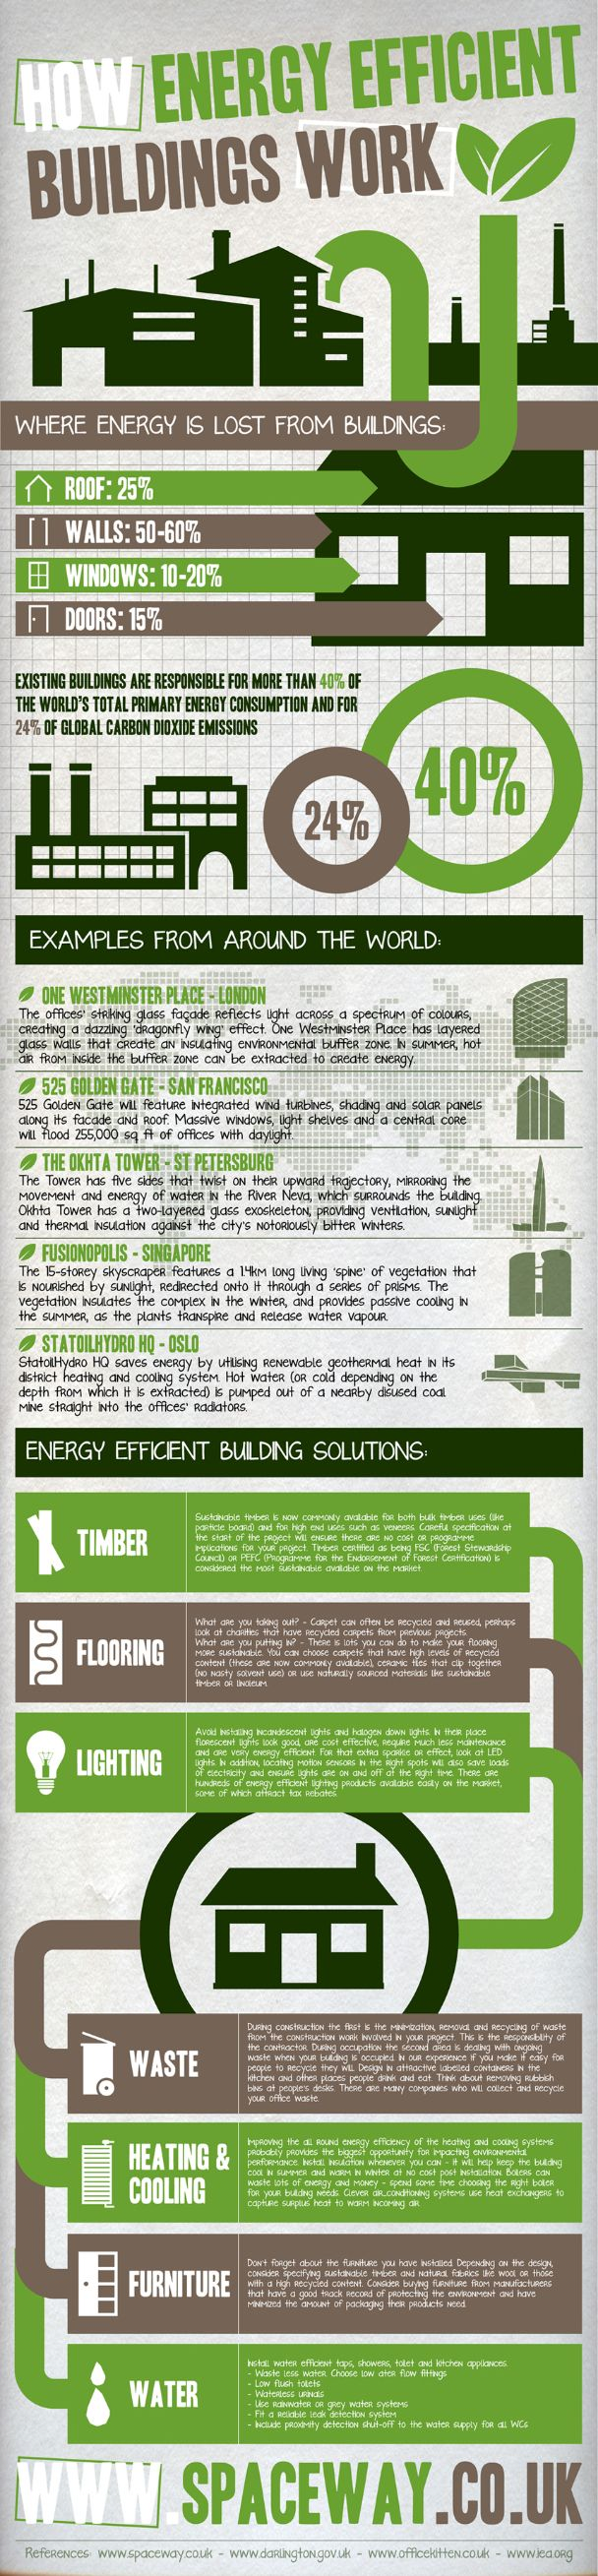 How energy efficient buildings work #infographic #eco-friendly www.dogwoodalliance.org